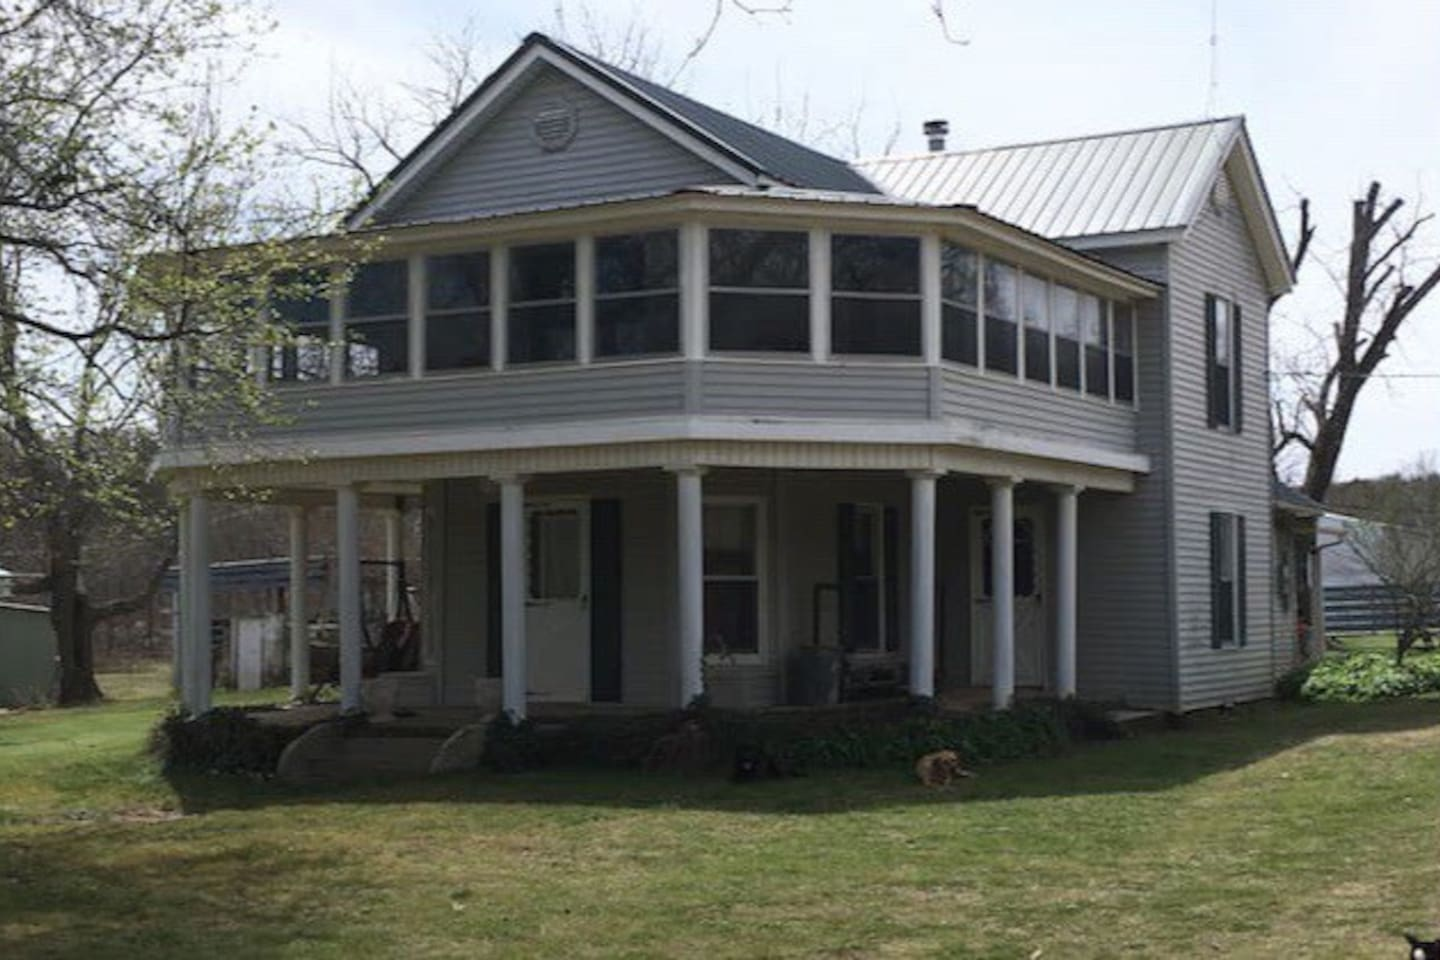 View of the house as you drive up